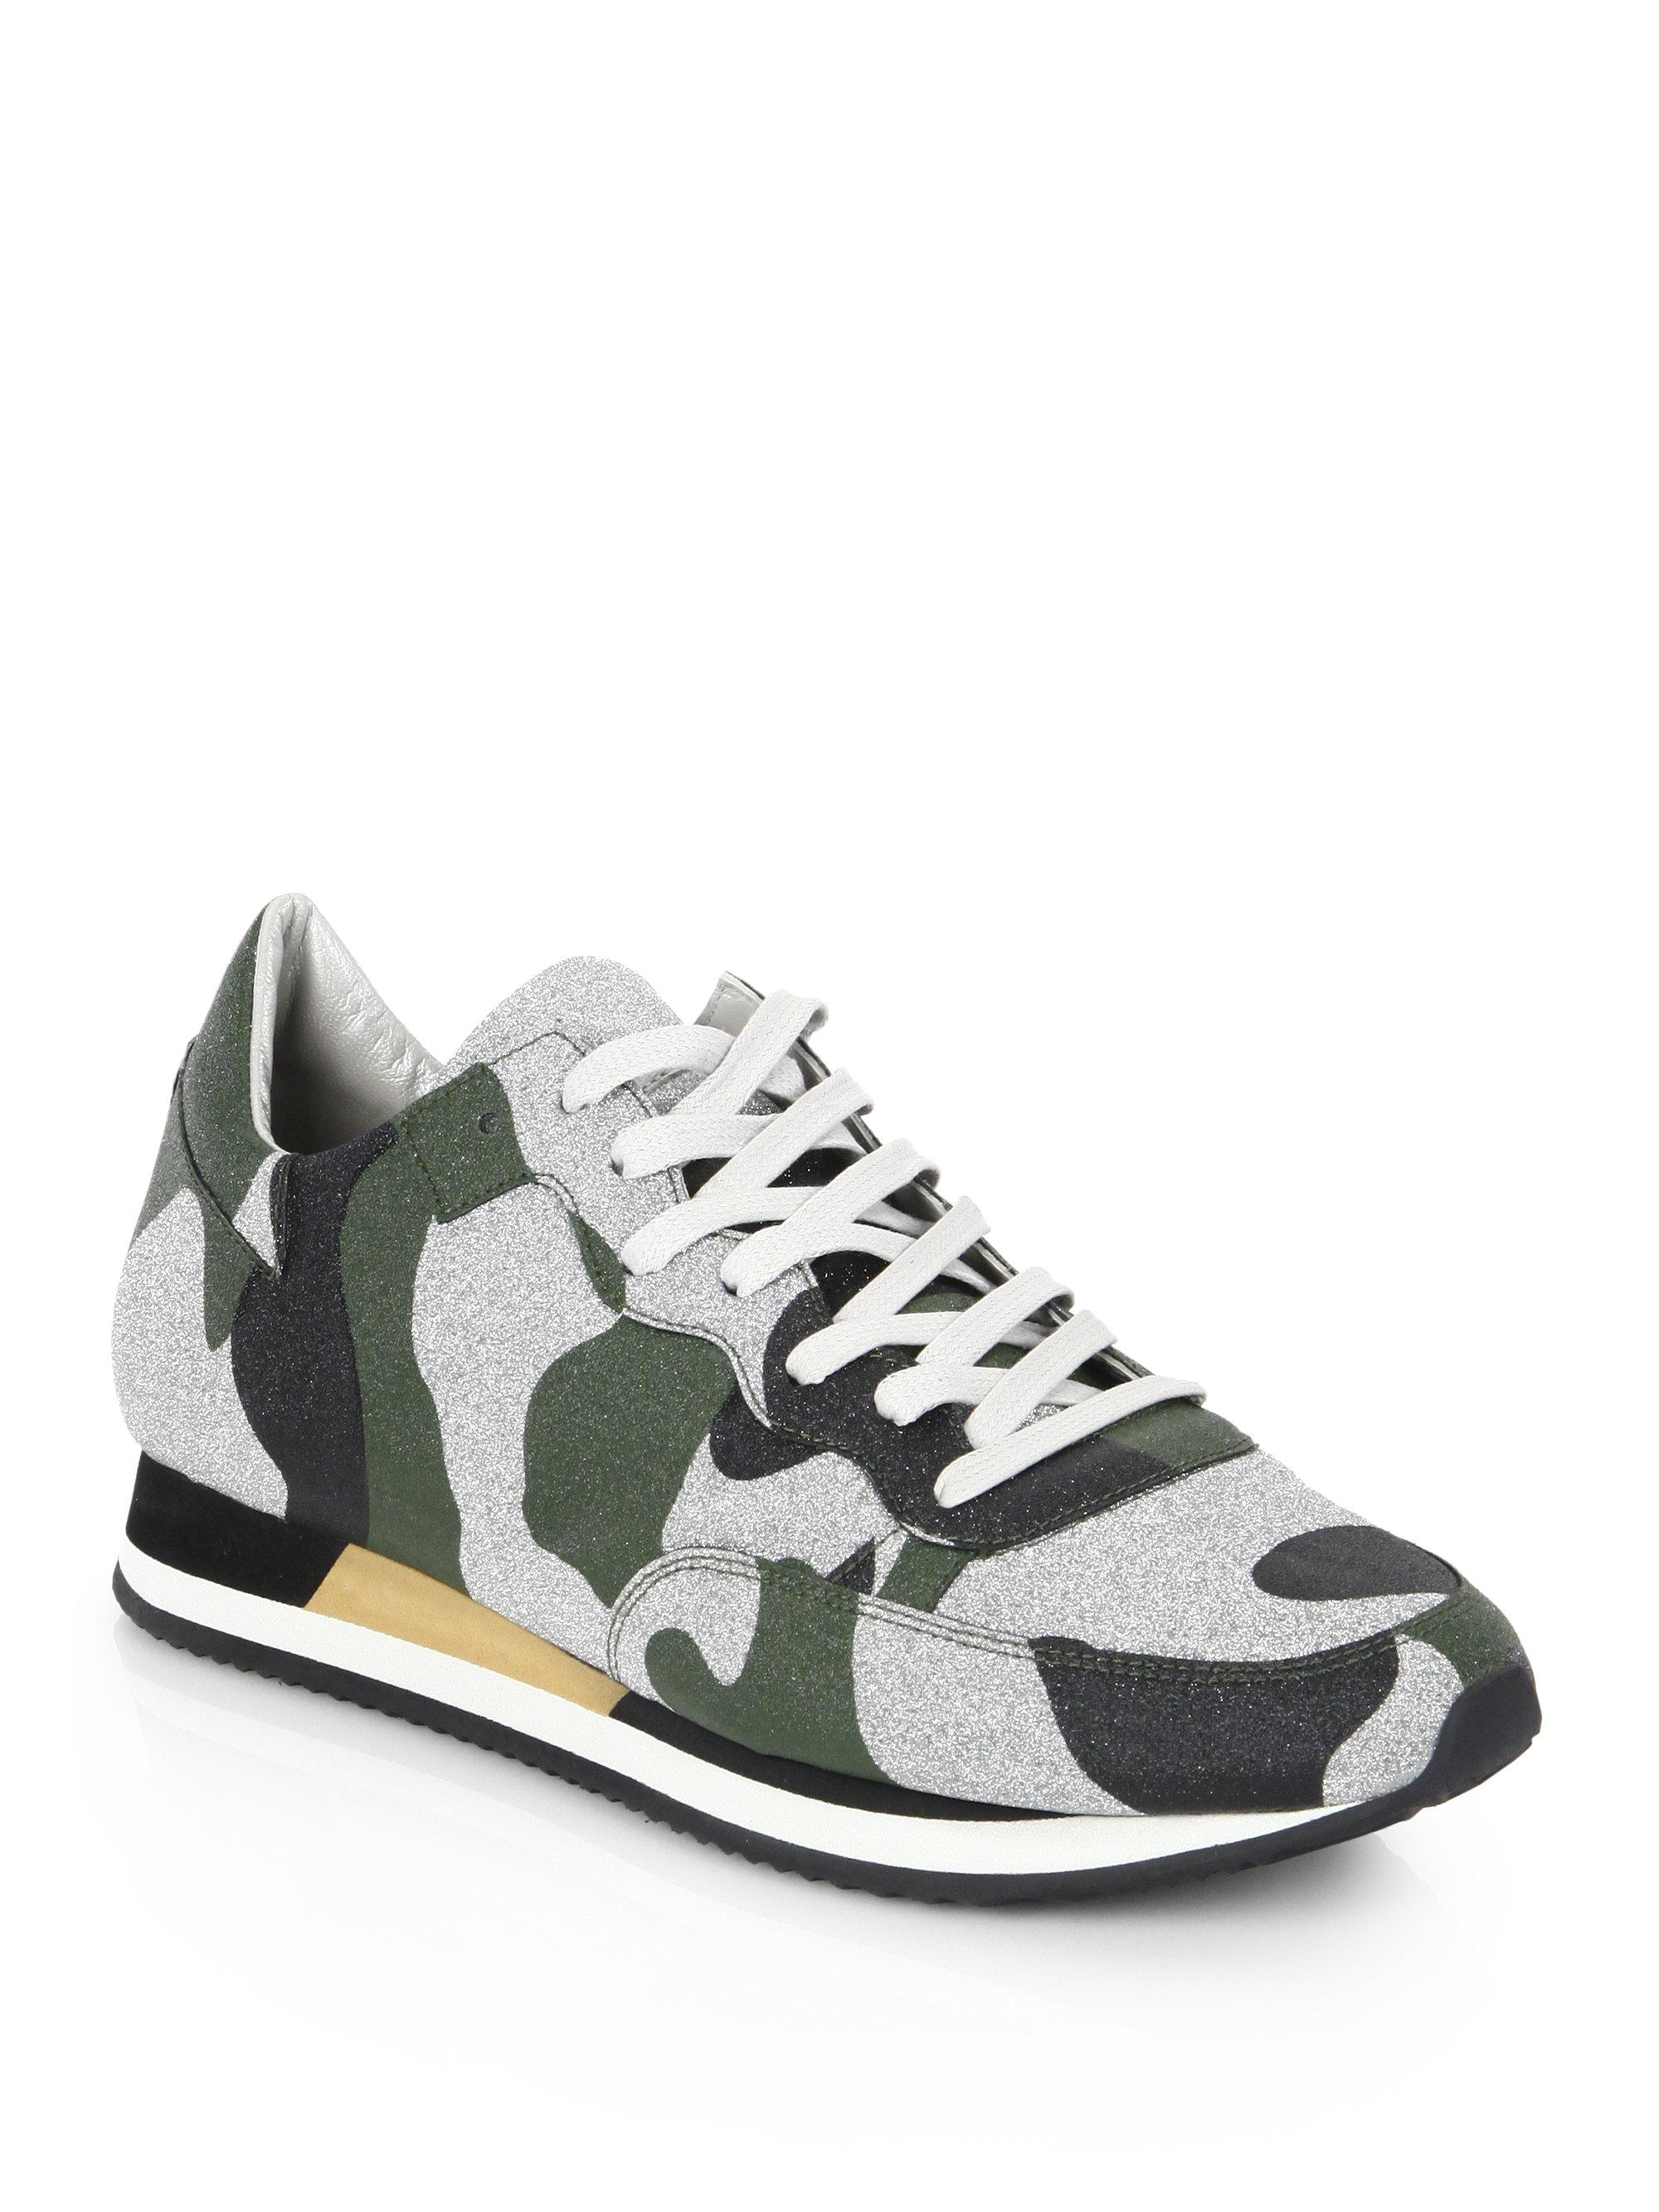 Philippe modelTropez Camo-Print Leather Low-Top Sneakers